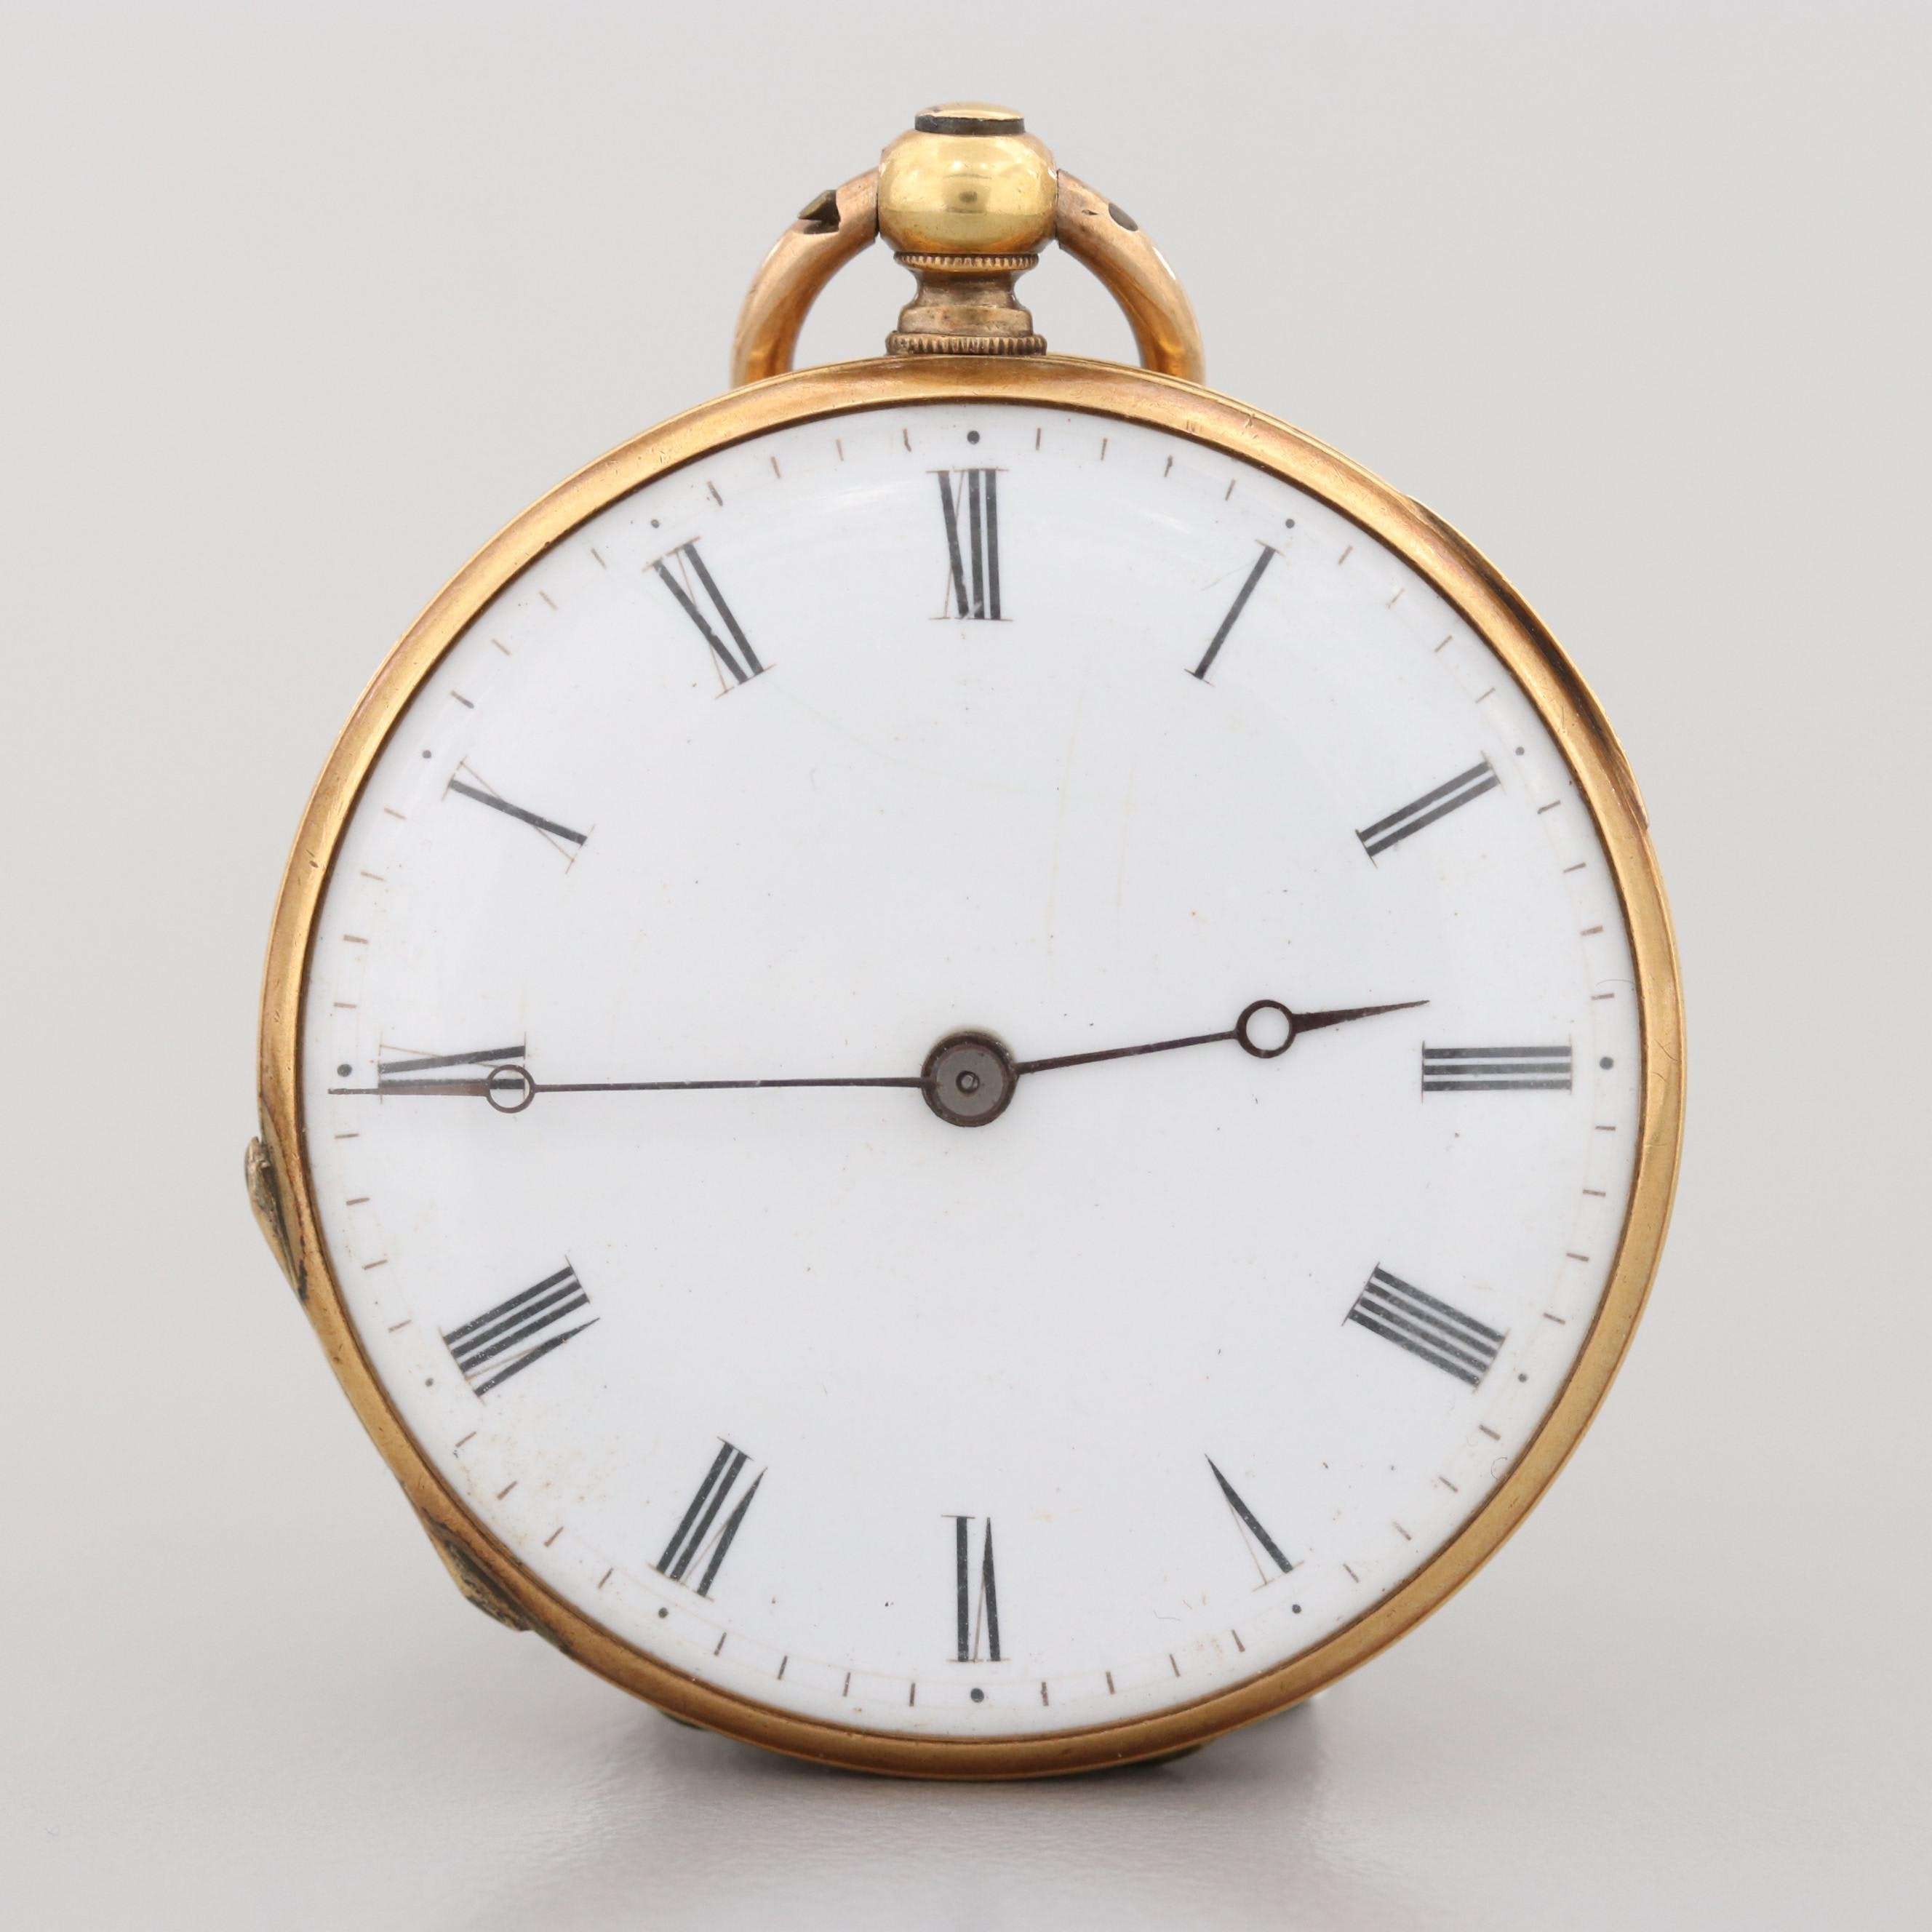 European 18K Yellow Gold Pocket Watch, Late 1800s